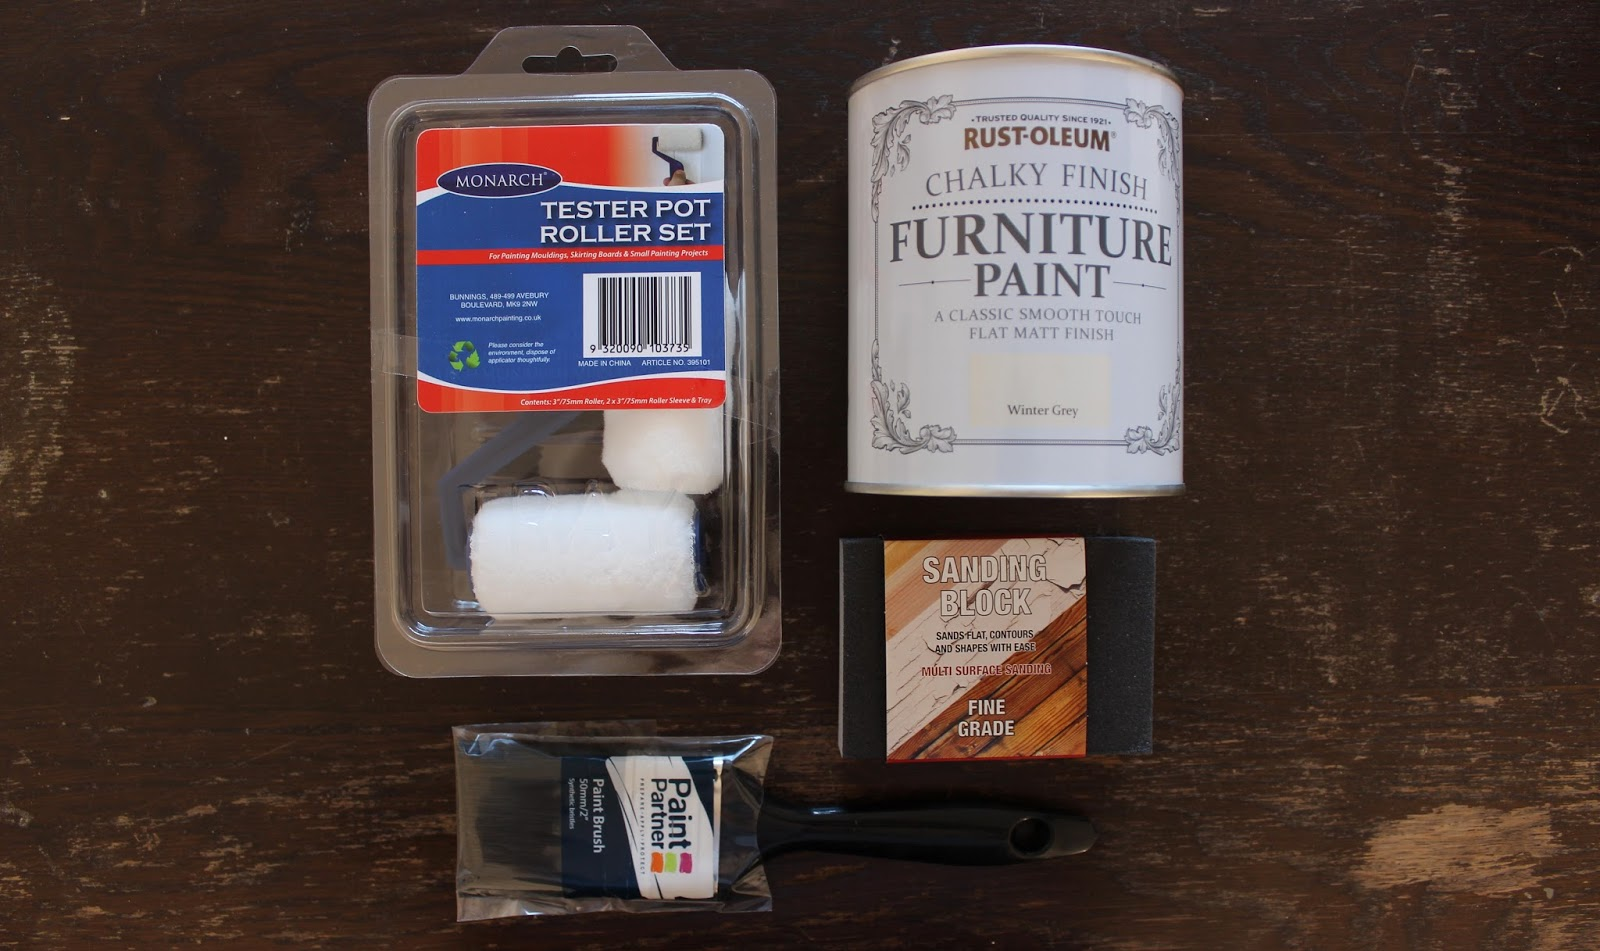 Upcycling a Wooden Cabinet with Rust-Oleum Furniture Paint